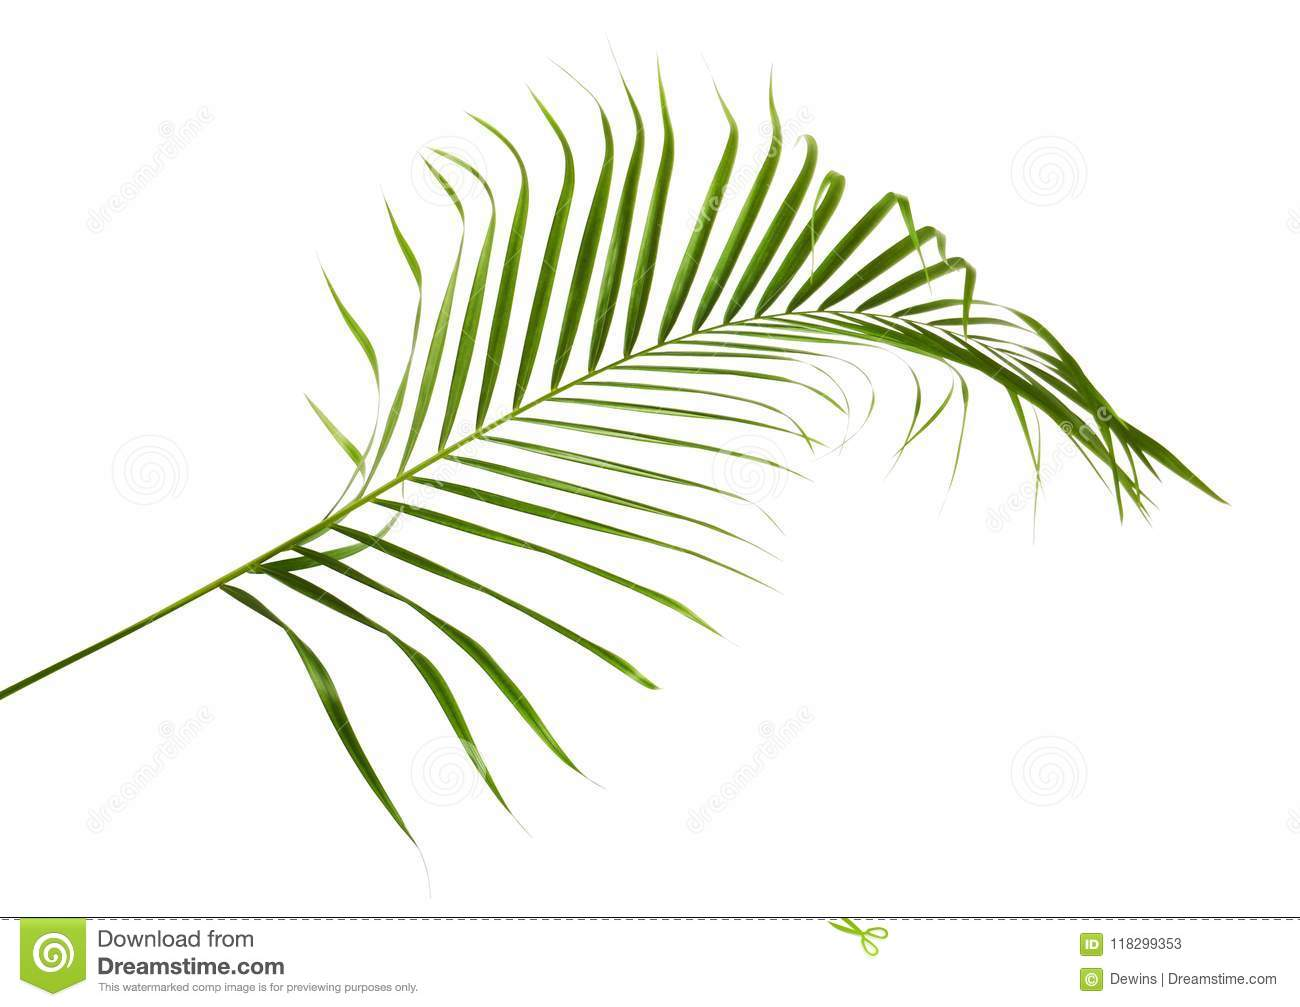 Yellow Palm Leaves Dypsis Lutescens Or Golden Cane Palm Areca Palm Leaves Tropical Foliage Isolated On White Background Stock Image Image Of Isolated Evergreen 118299353